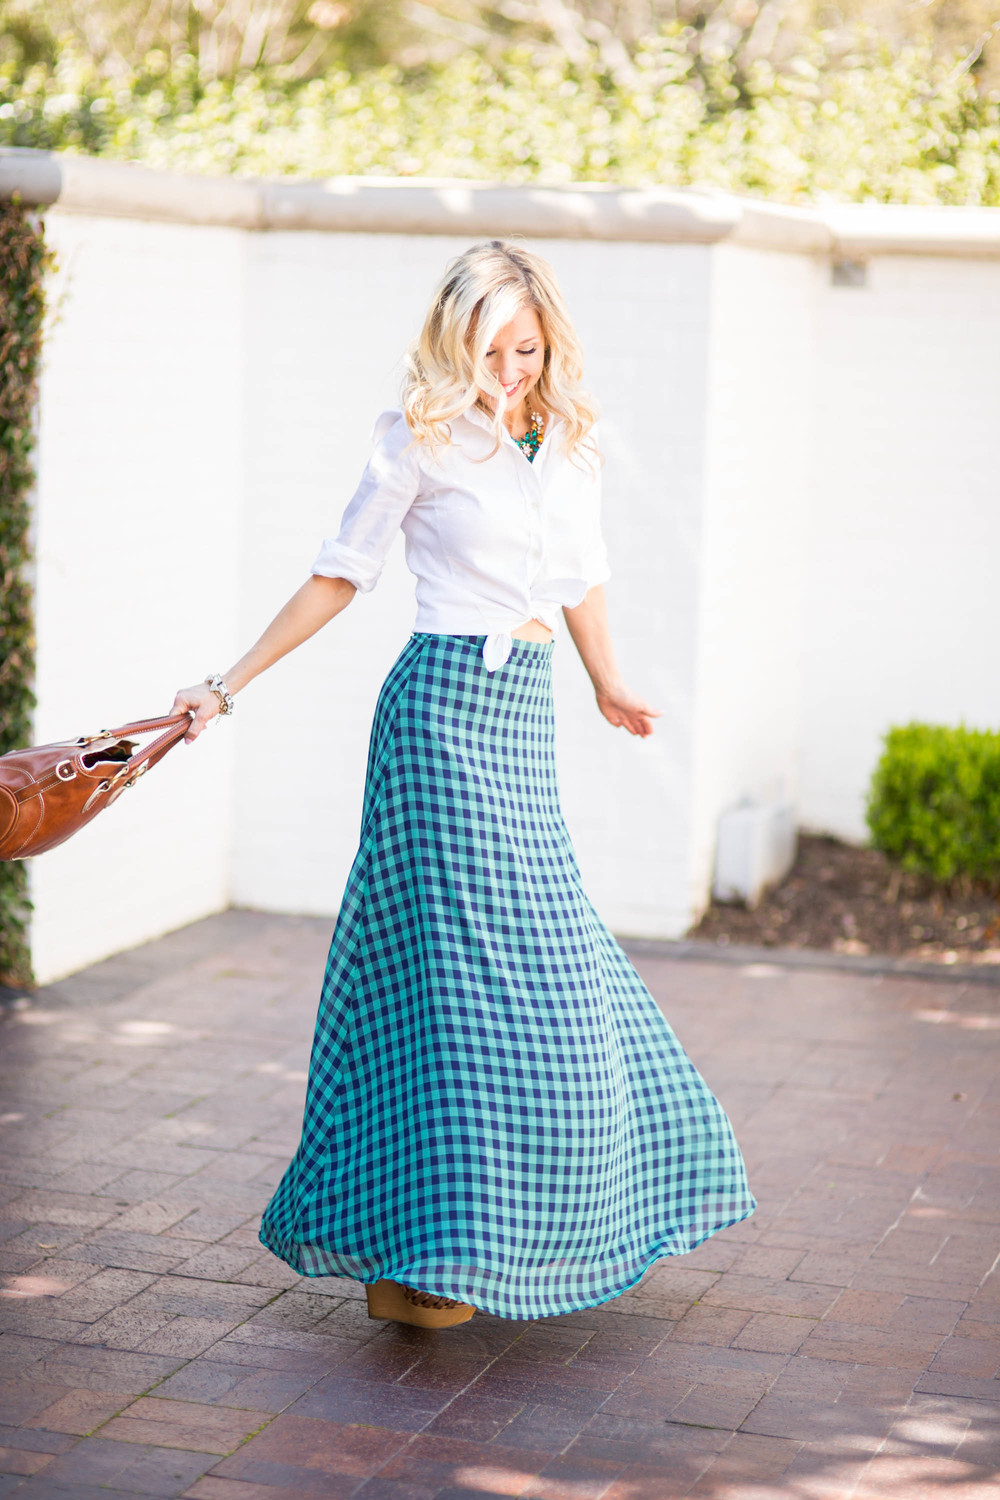 Shabby Apple / Gingham / Maxi Skirt / Accessory Jane / Dallas Fashion Blogger